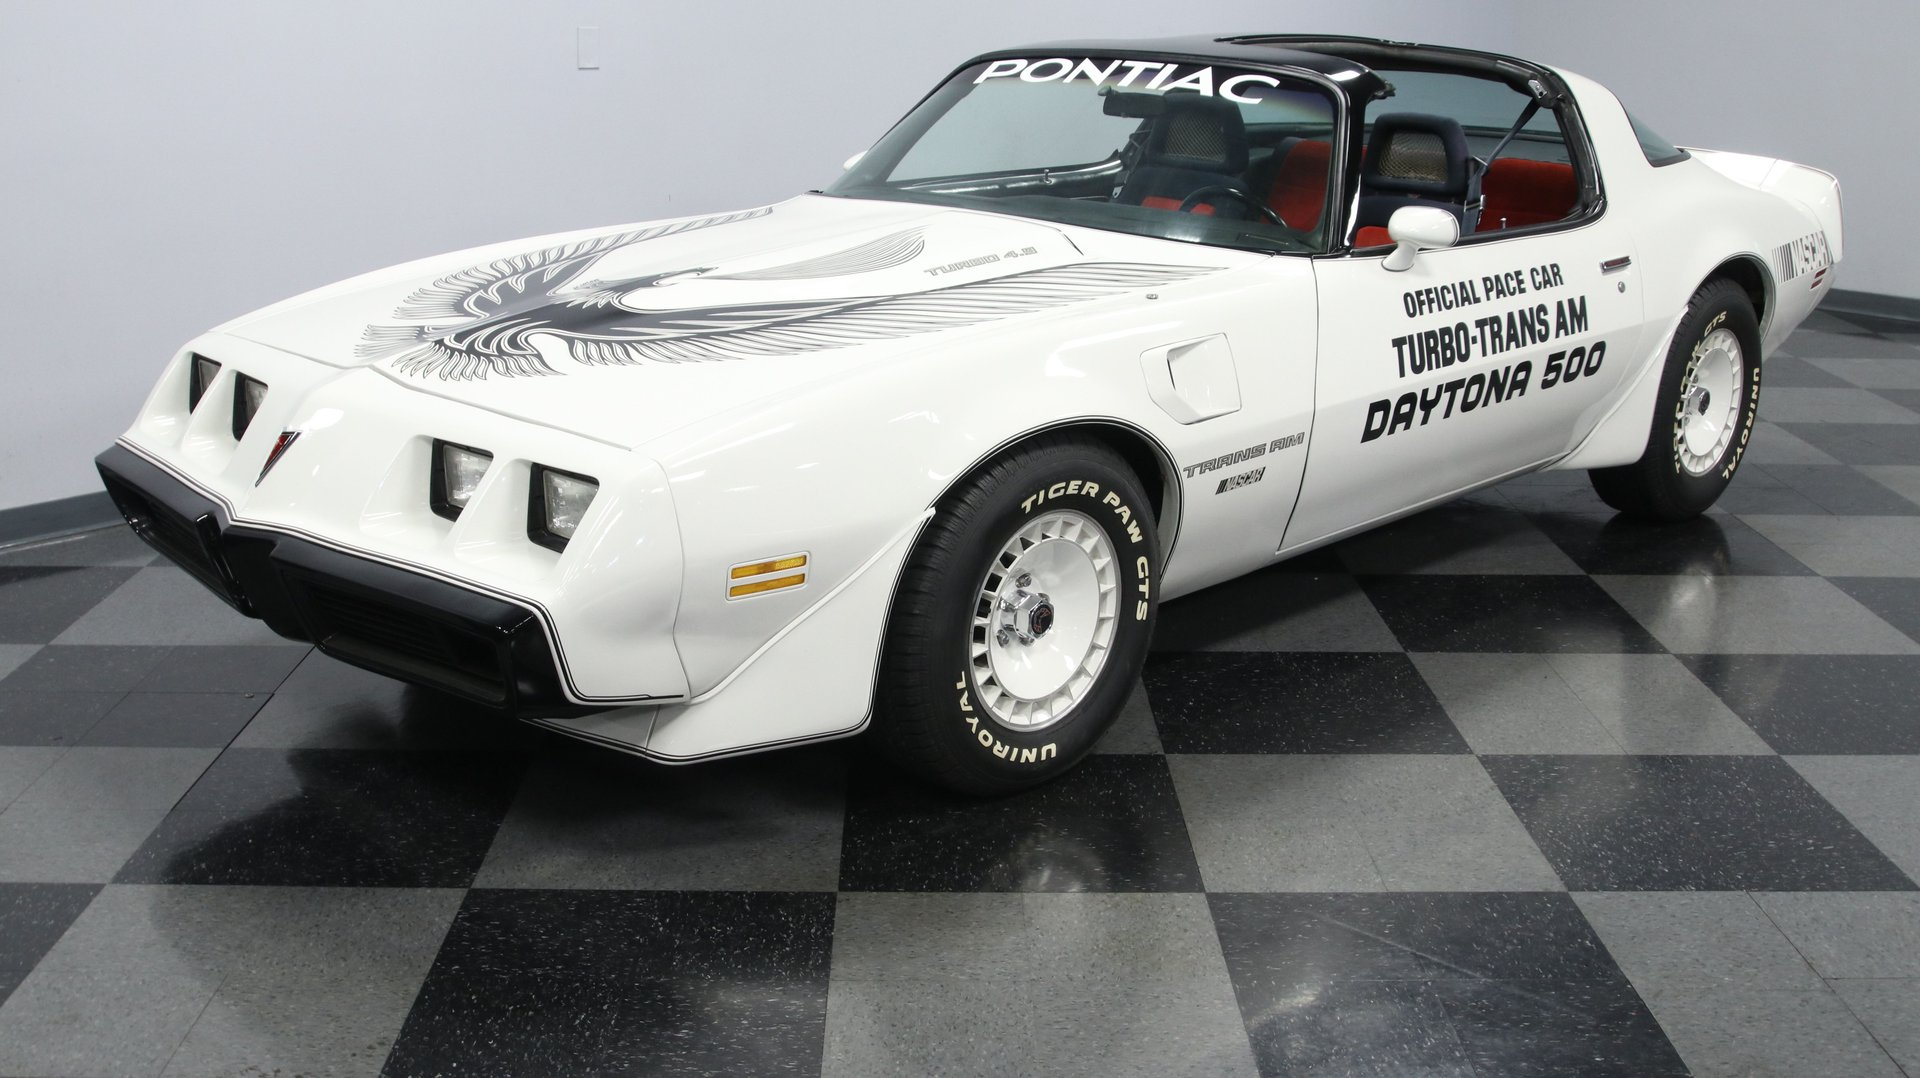 1981 pontiac firebird trans am turbo pace car restomod